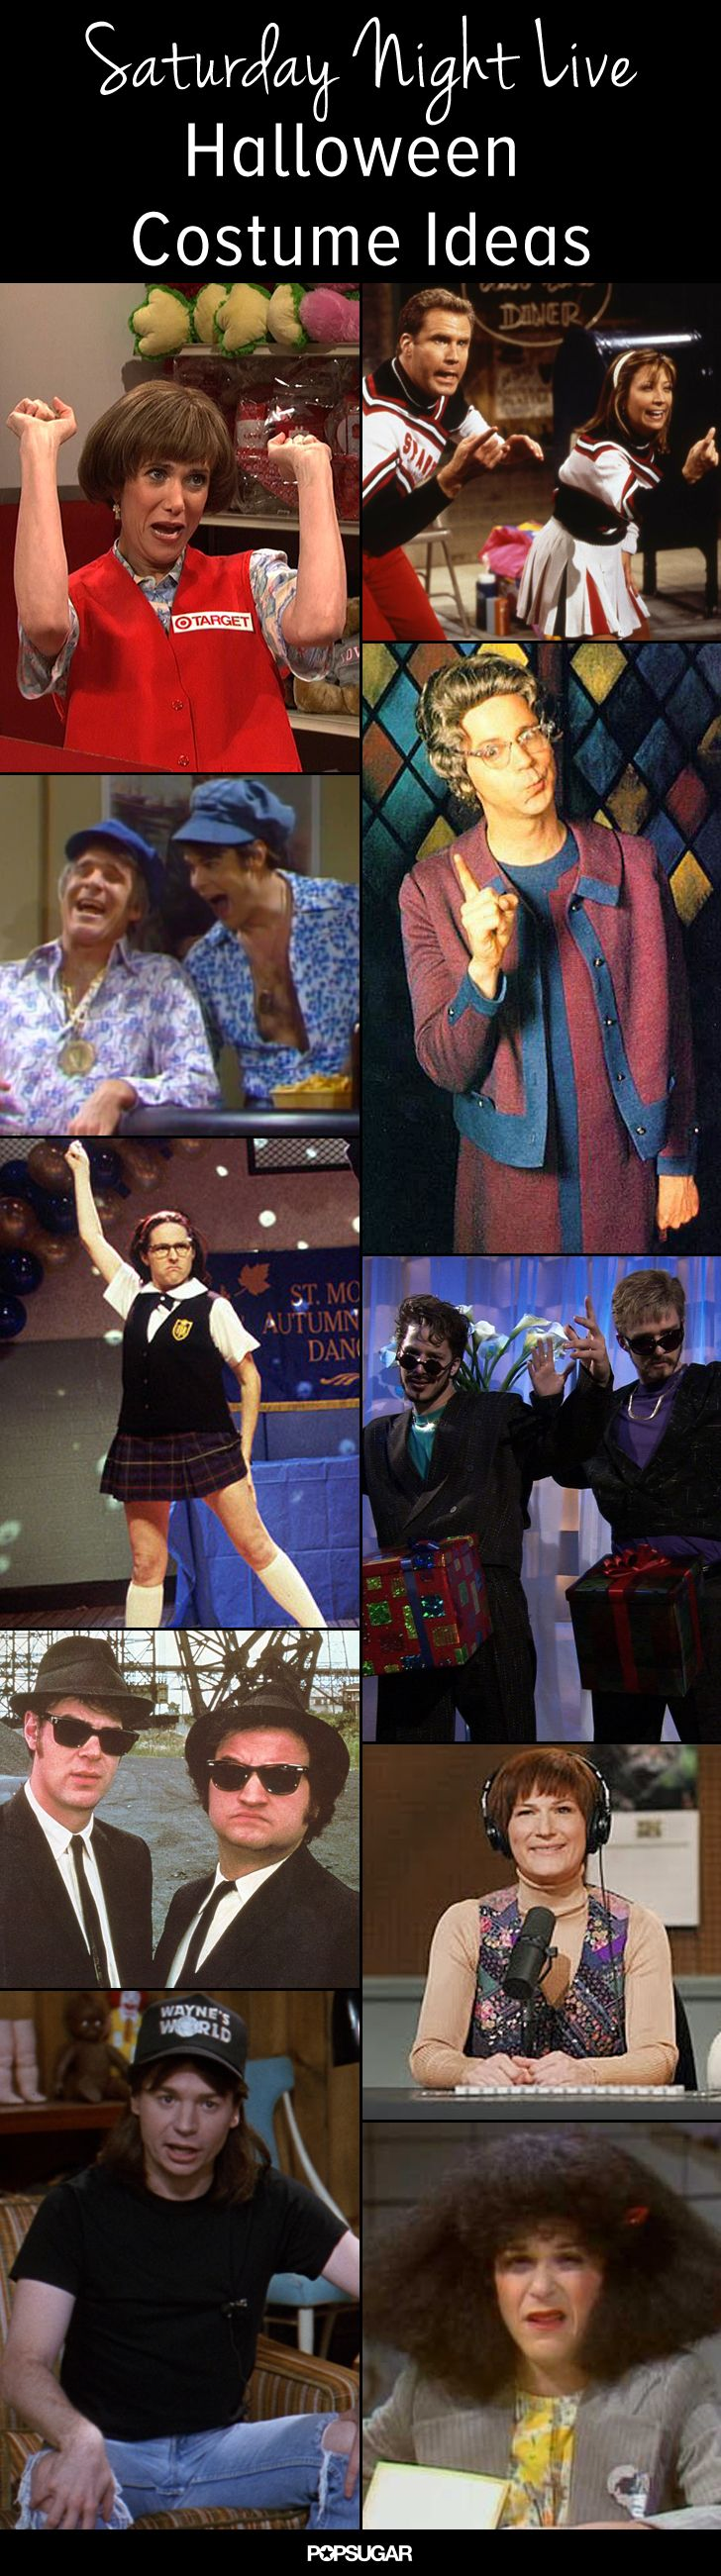 Memorable SNL Characters That Make For Hilarious Halloween Costumes #halloween #costume #SNL